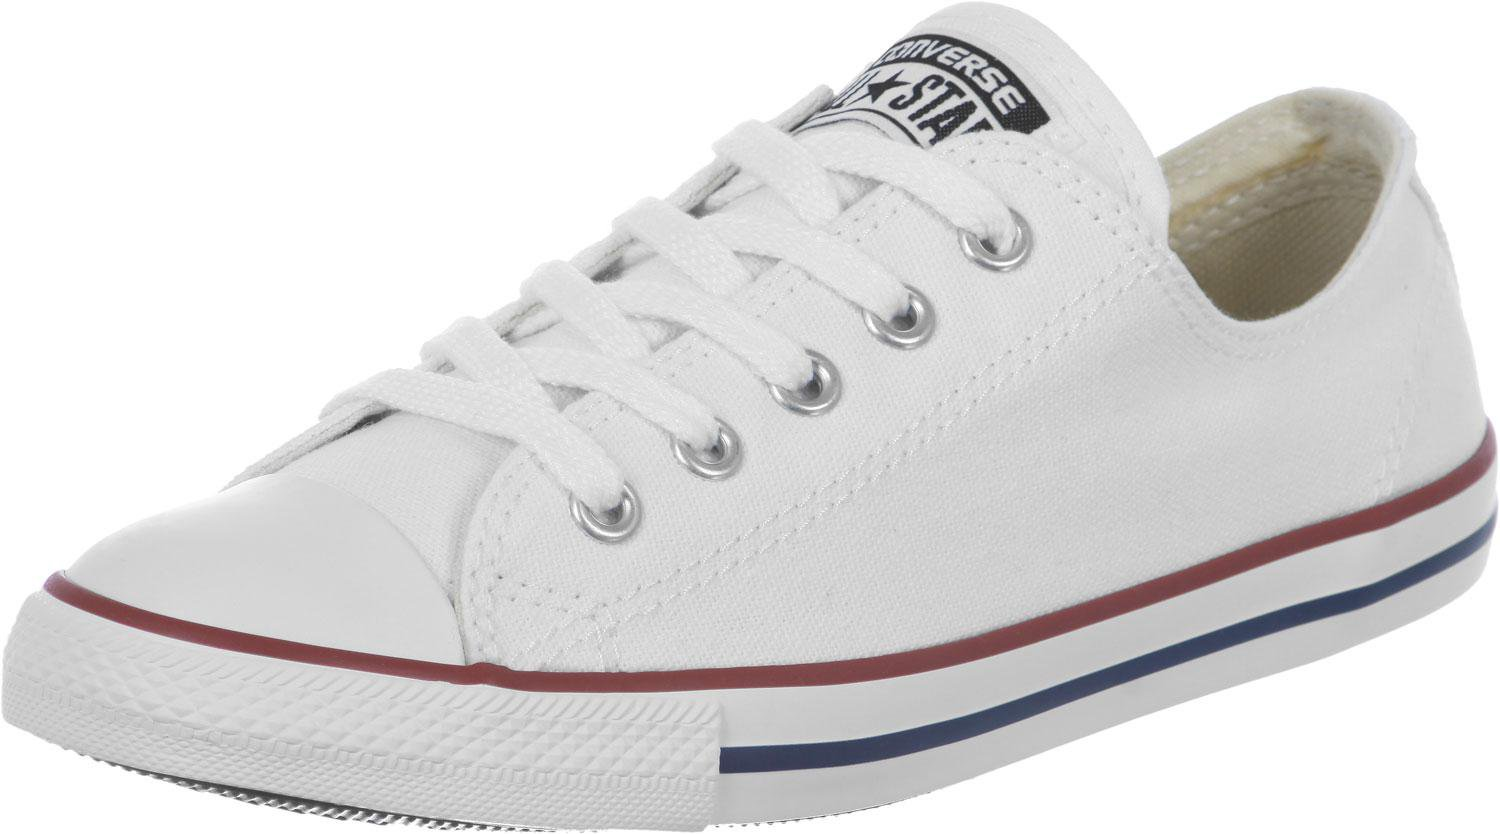 Converse Chuck Taylor Dainty Ox white (537204C)